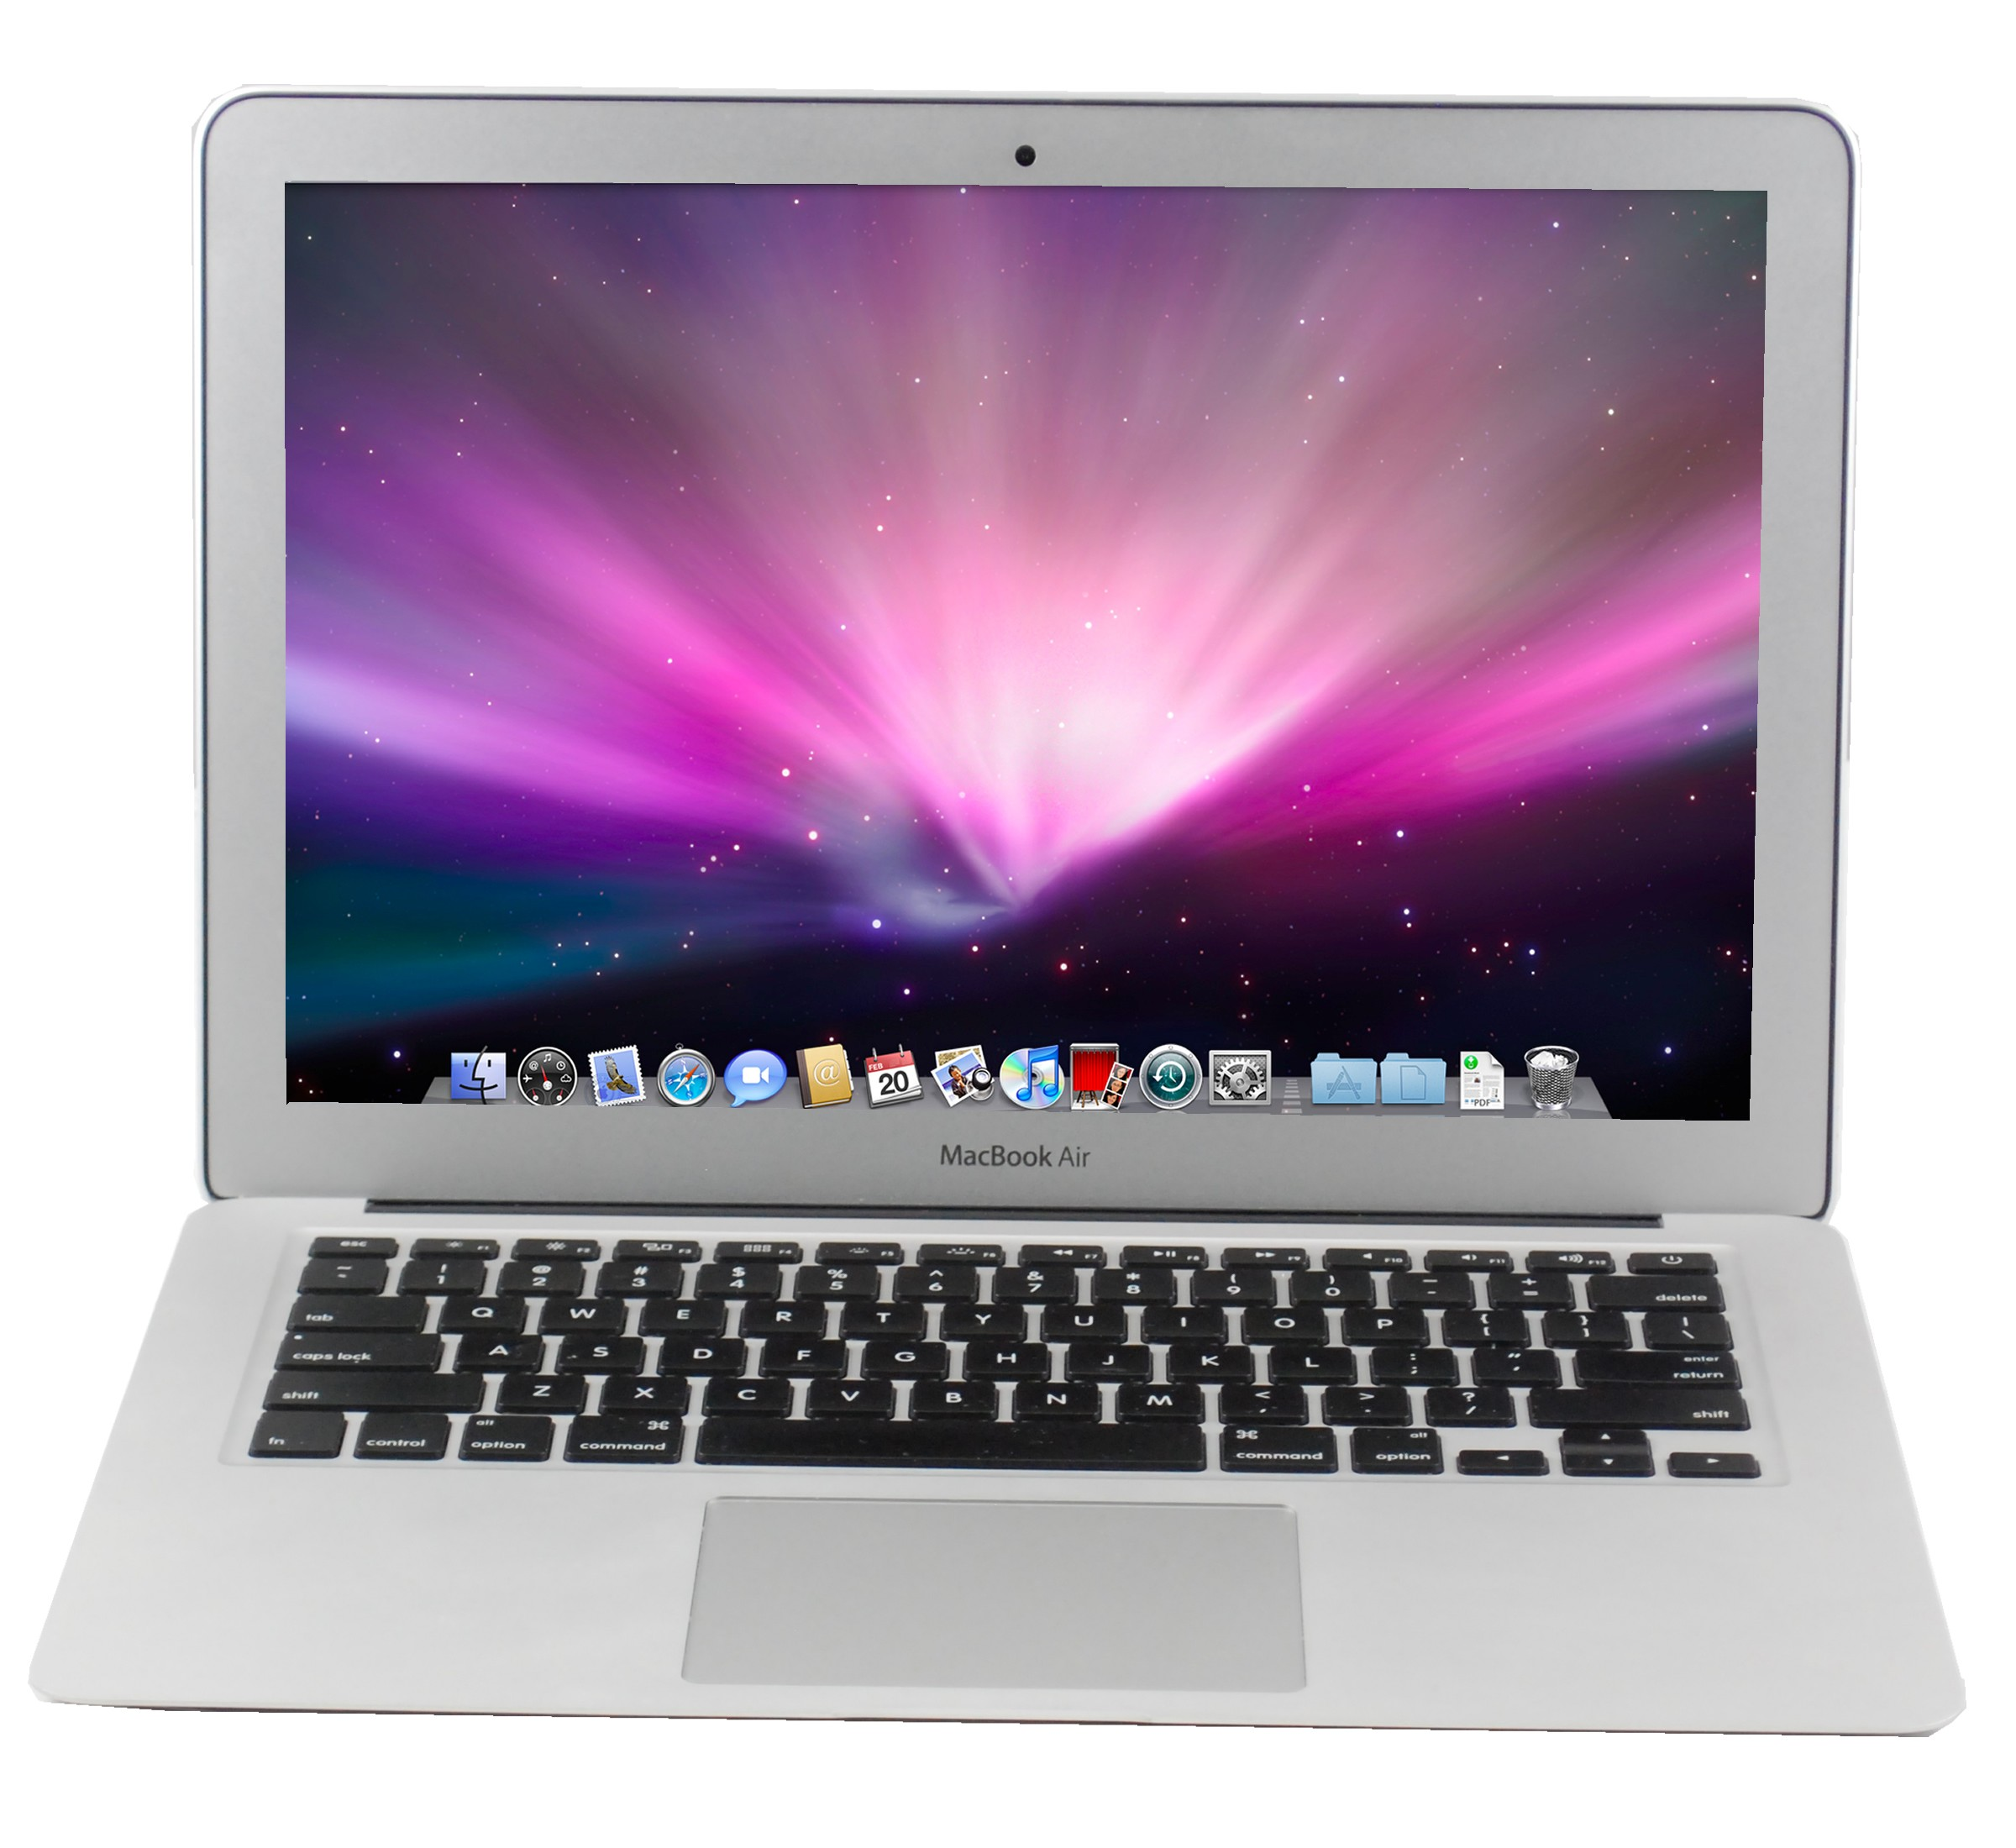 Apple MacBook Air 13in Core i5 1.8GHz 8GB RAM 250GB SSD MD846LLA A1466